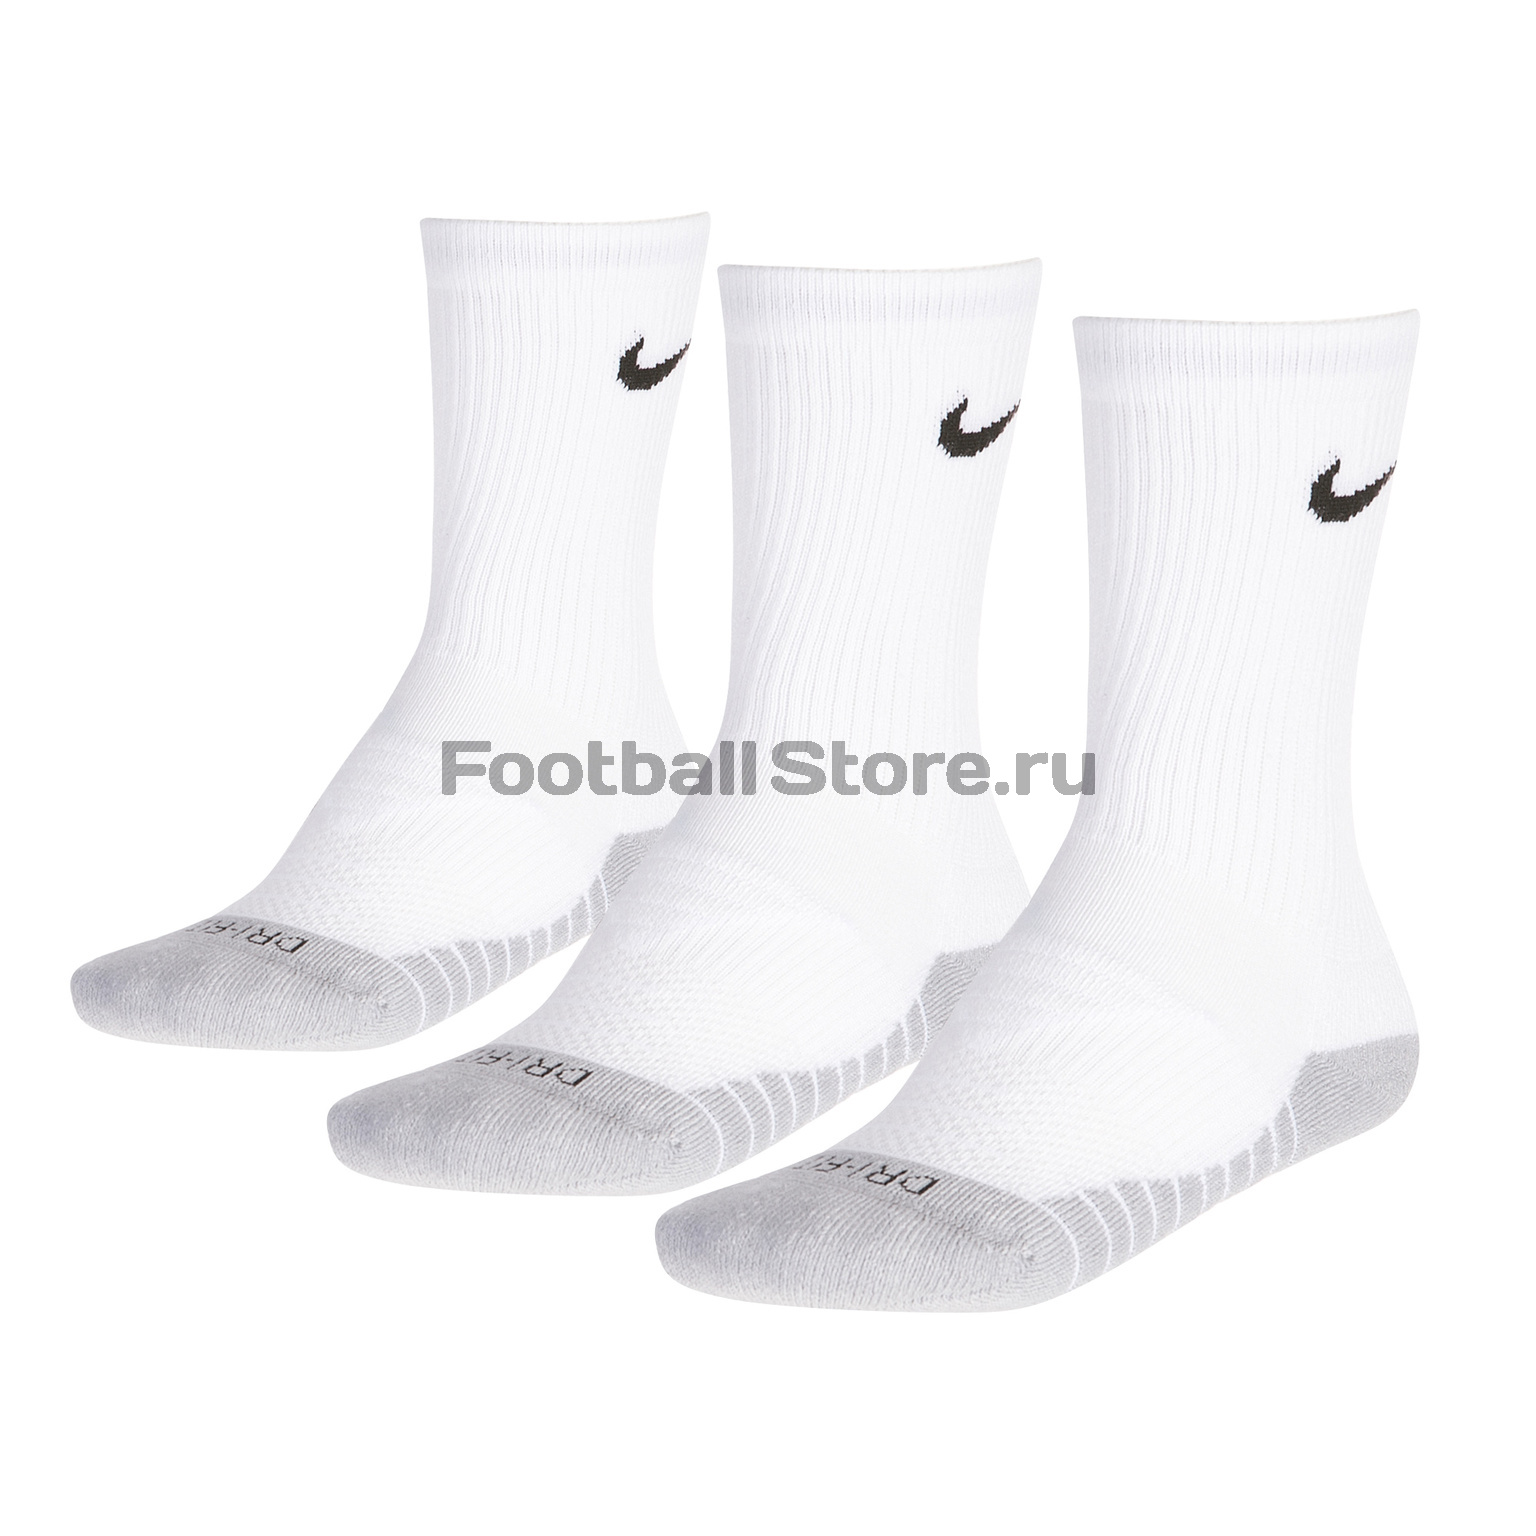 Комплект носков Nike 3PPK Dri-Fit Cushion Crew SX5547-100 комплект носков nike 3ppk cushion quarter sx4703 901